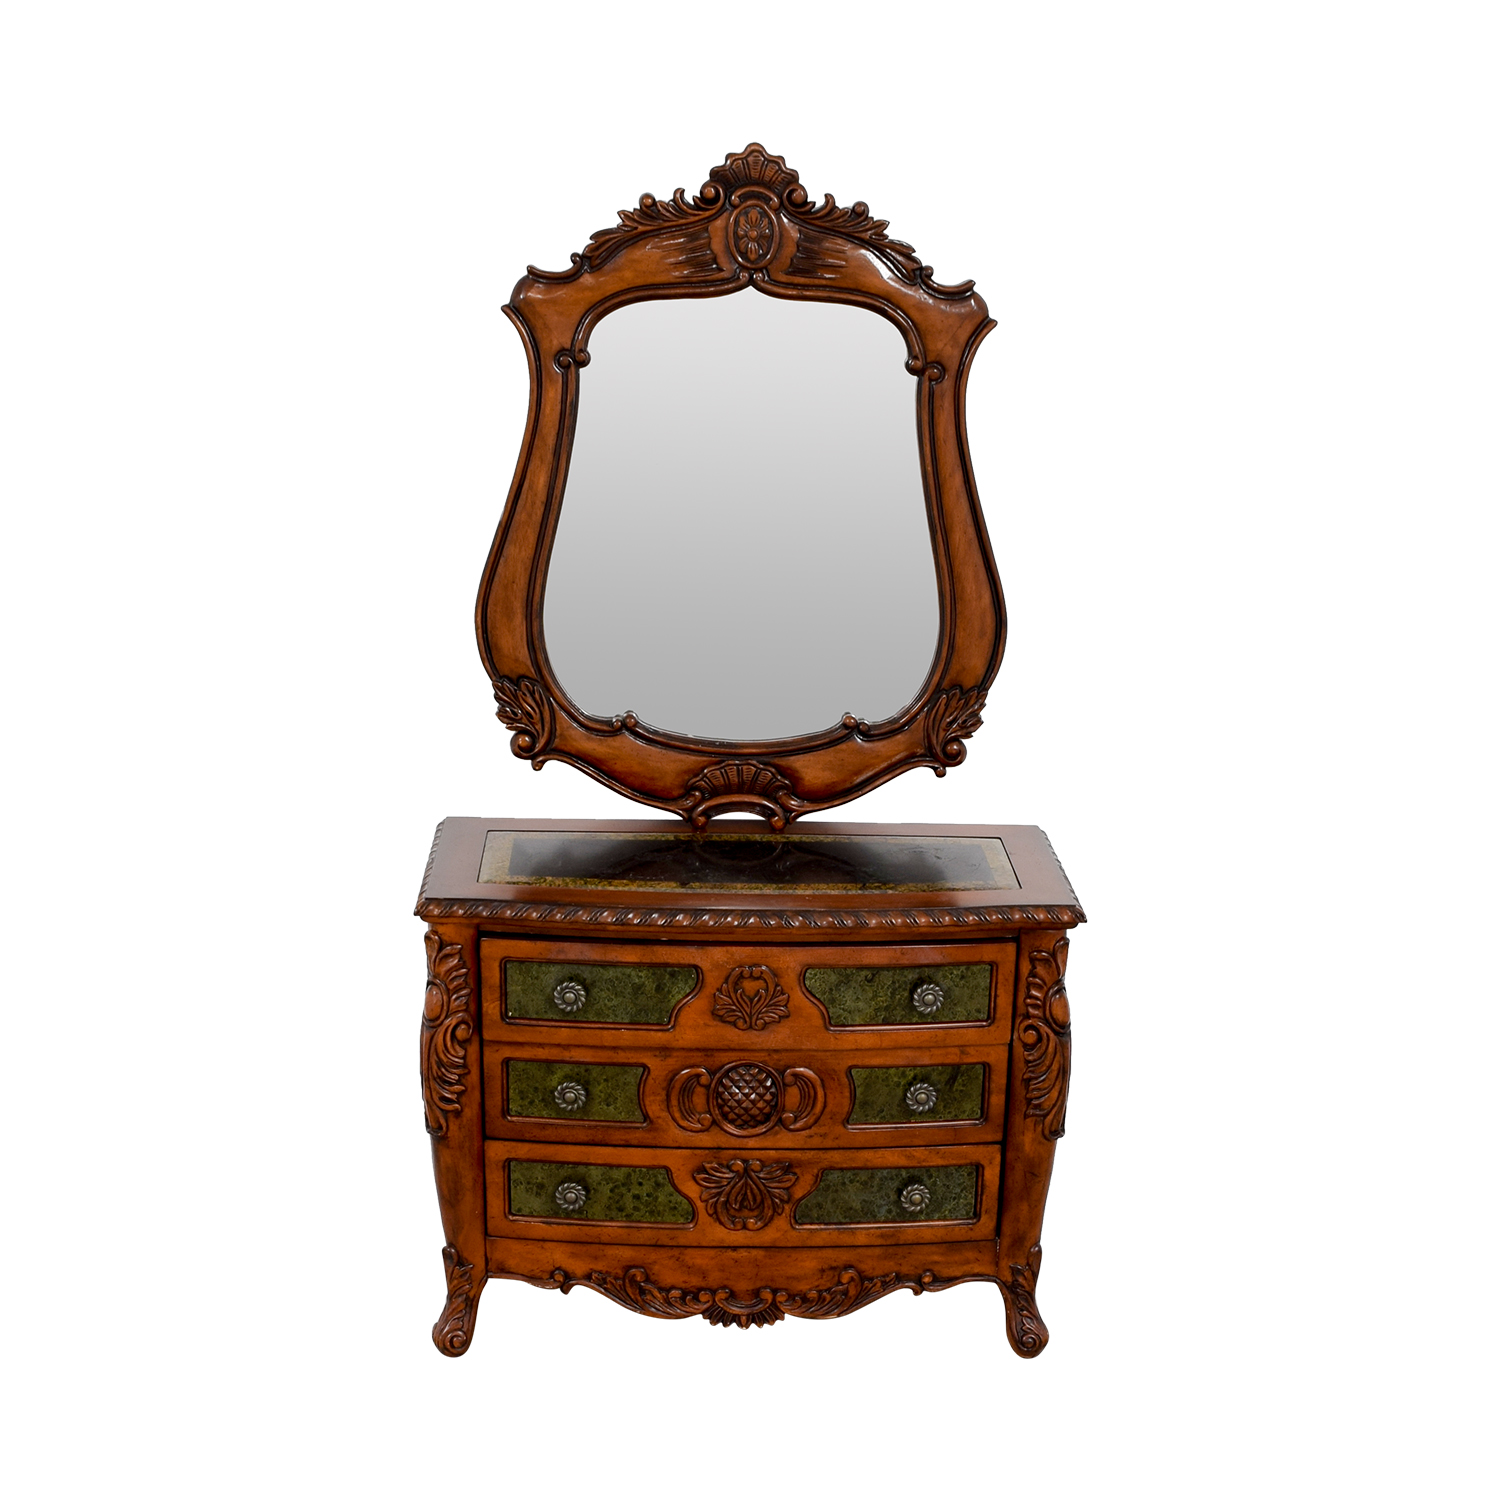 Wood Carved Three-Drawer Dresser with Mirror